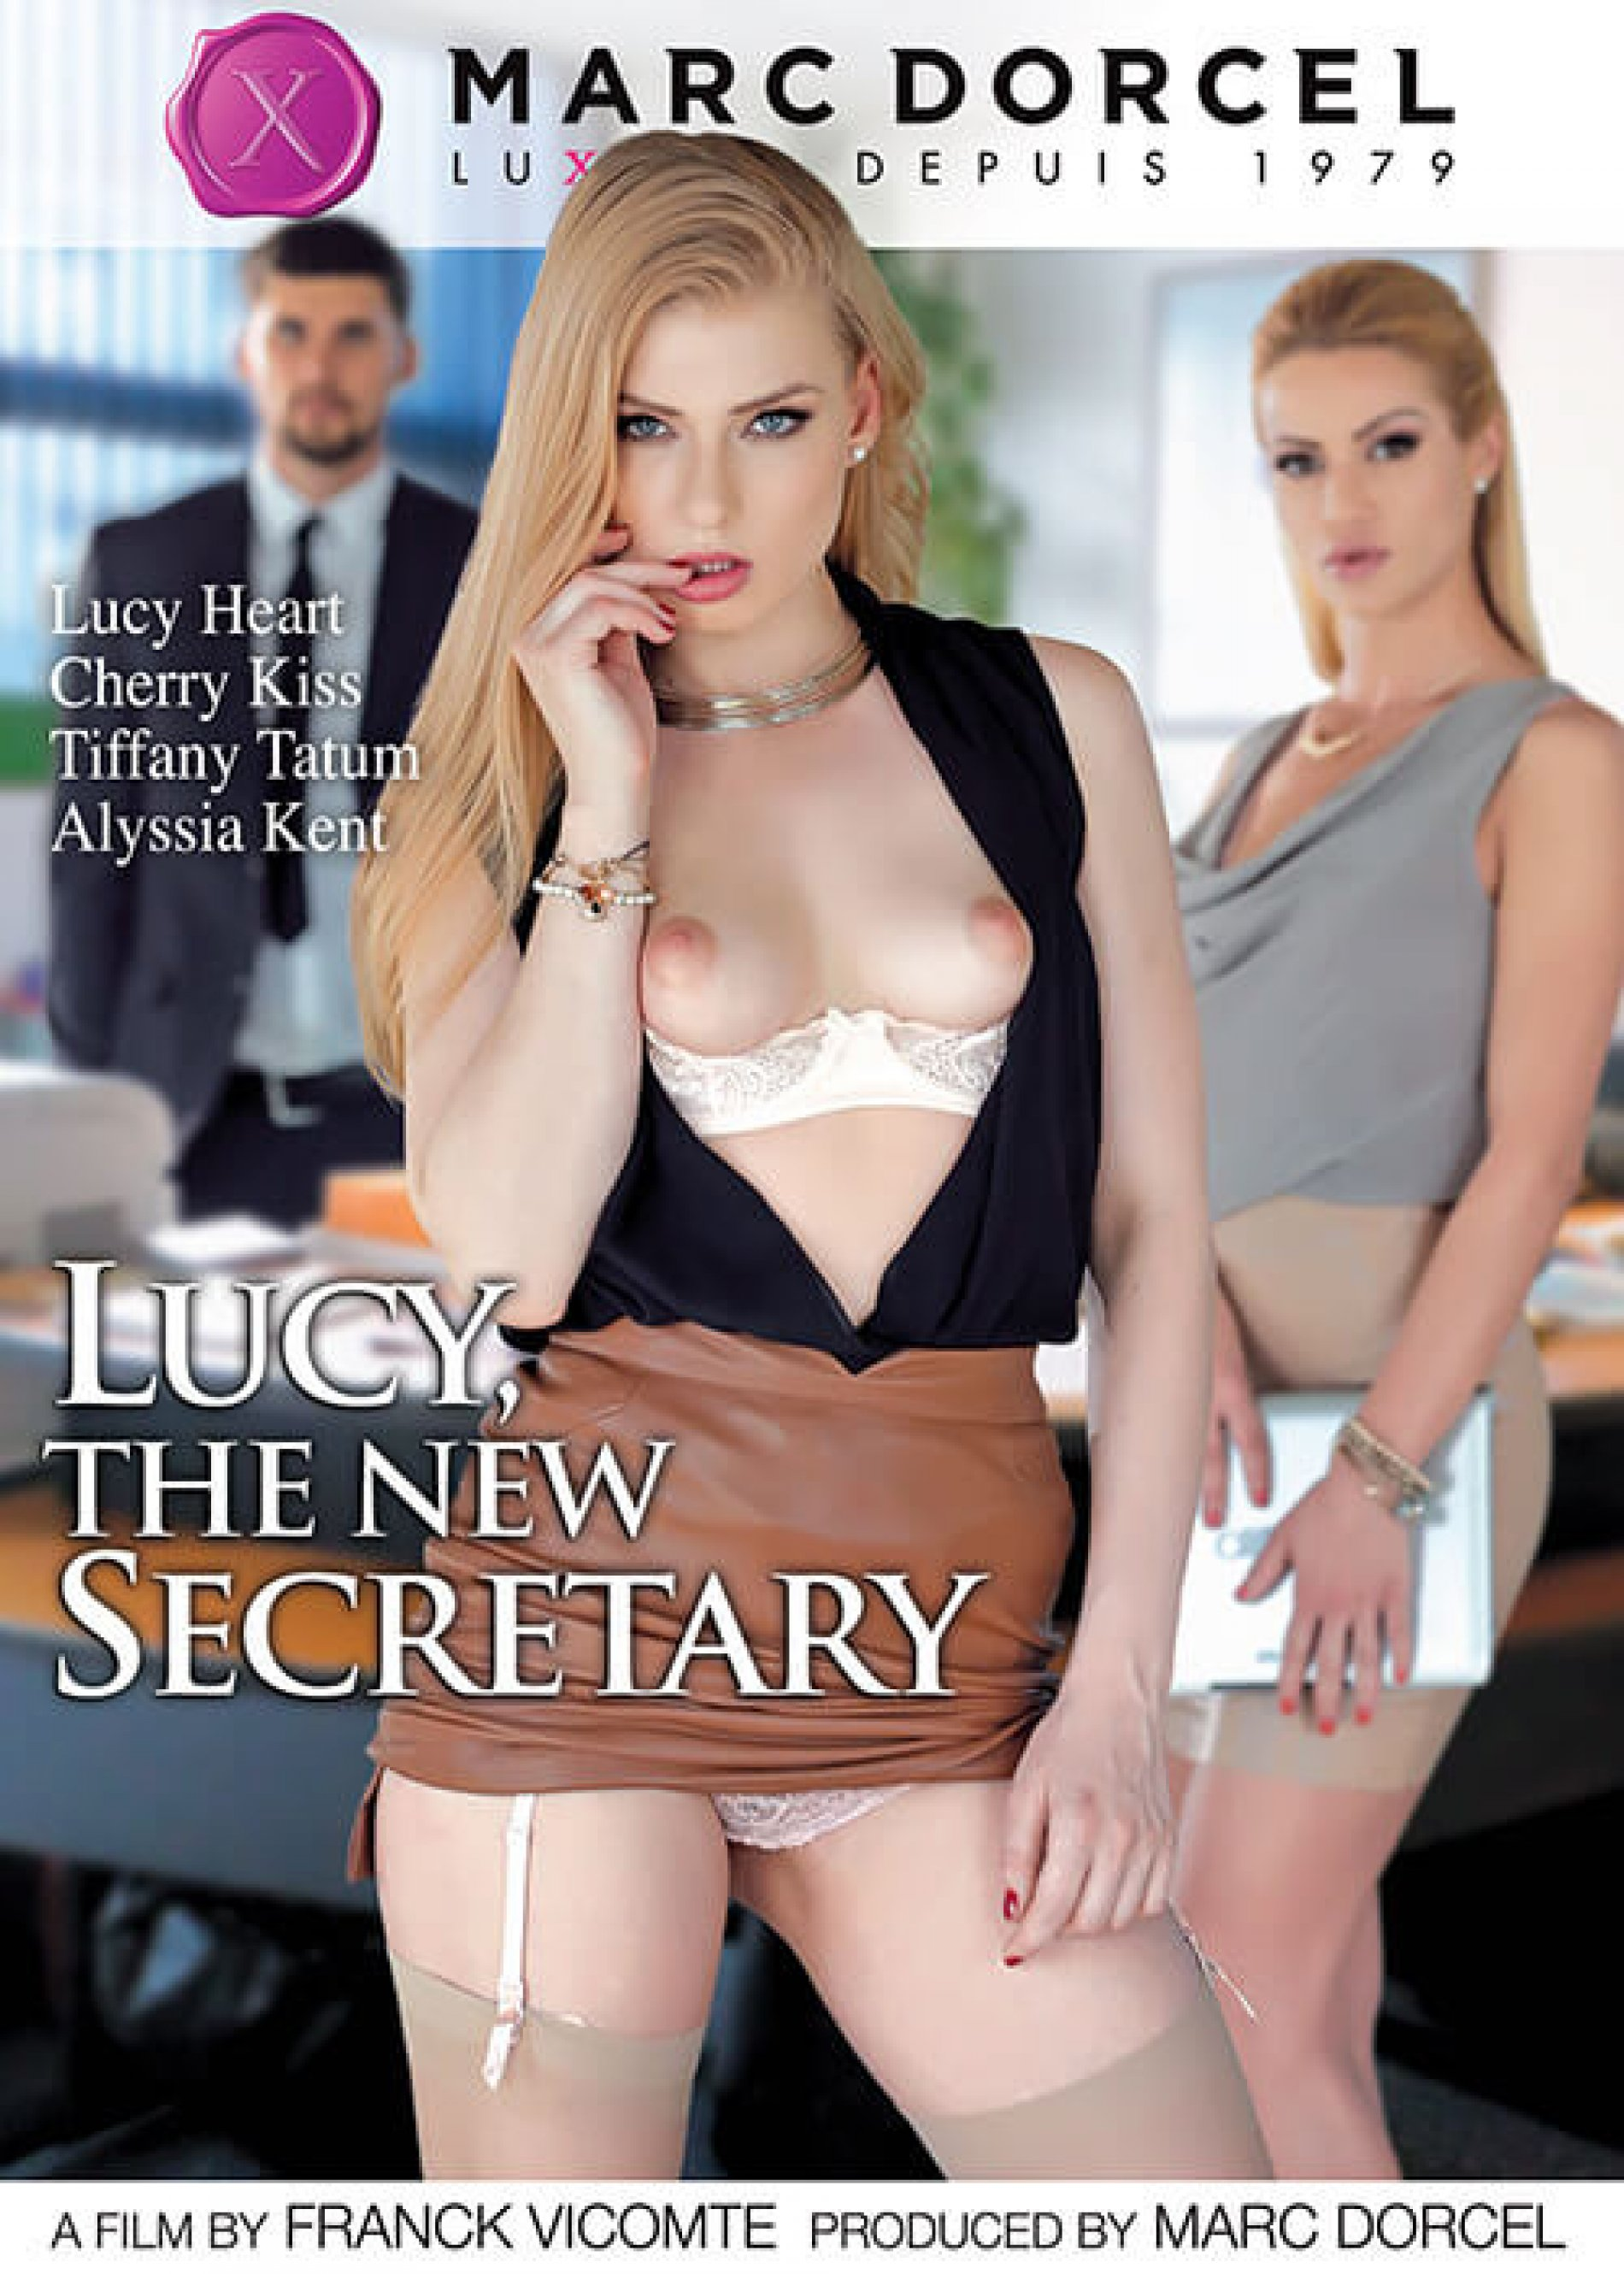 Lucy, the new secretary